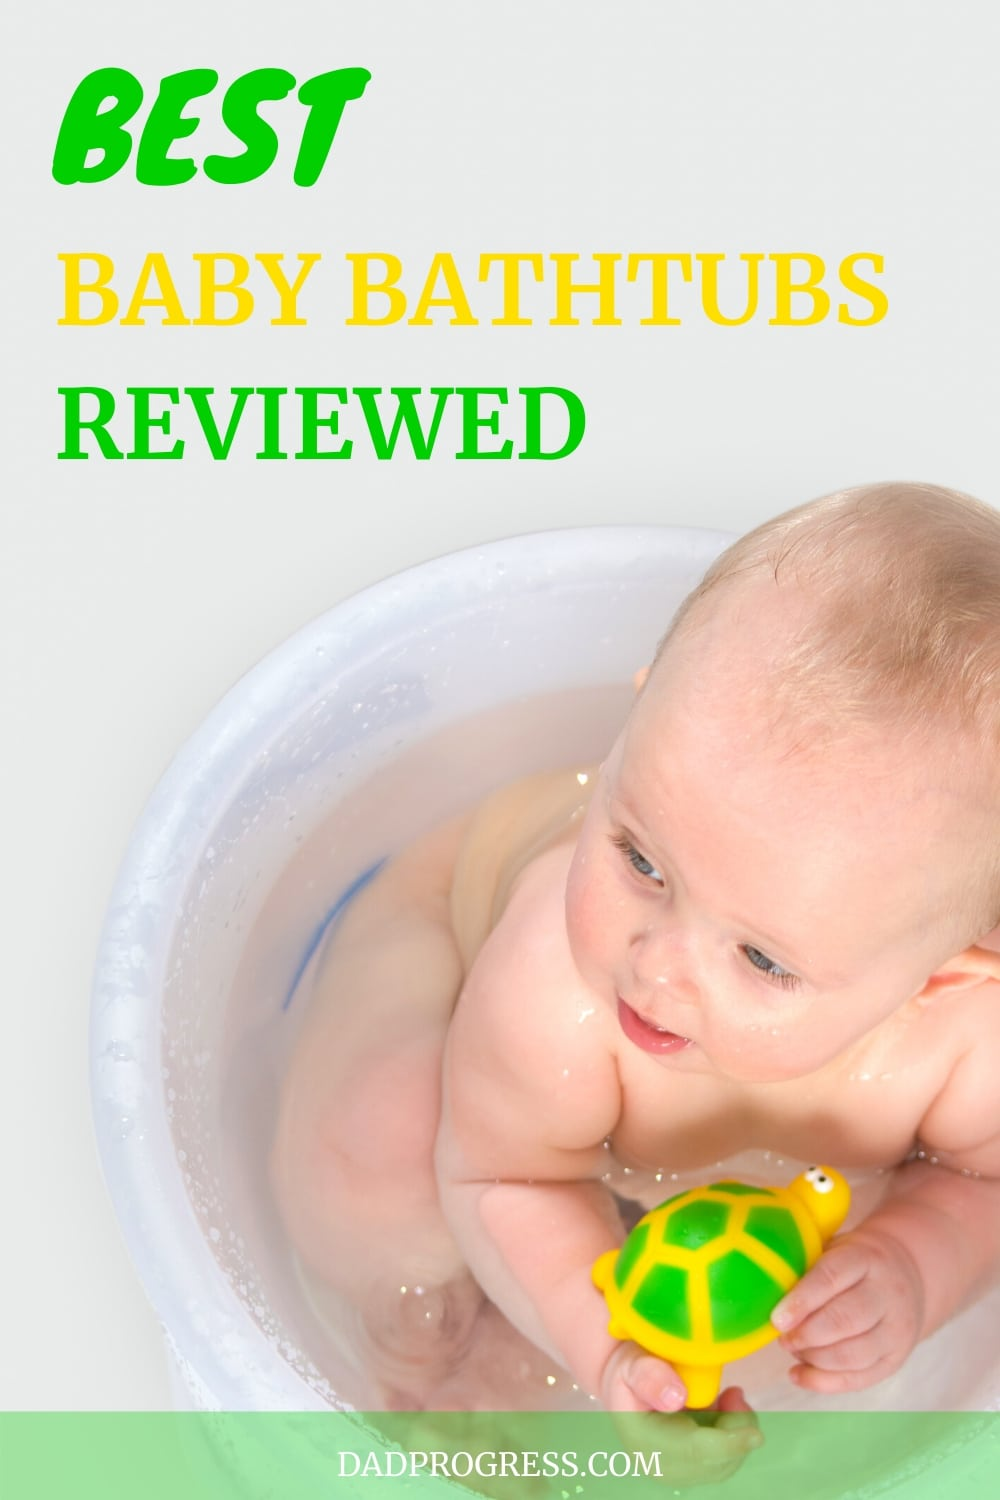 I wrote a guide on best baby bathtubs. There are many awesome options to choose from. Some are easy to store, others a great for new parents and some make bathing time more fun. Just click to read more.